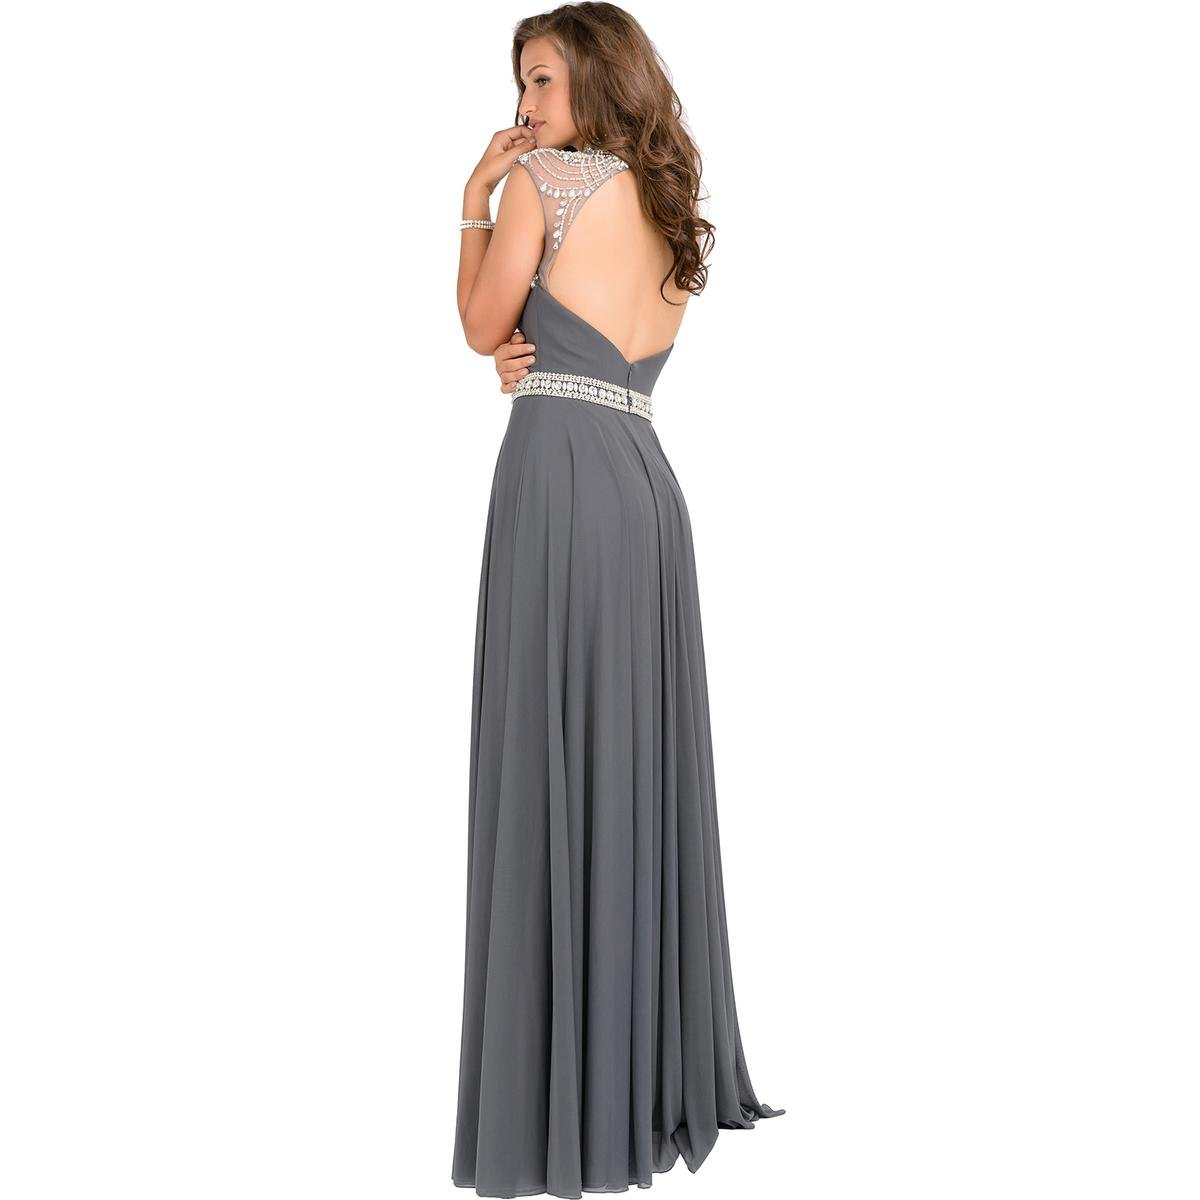 JVN by Jovani Womens Embellished Illusion Formal Dress - gray -: Amazon.co.uk: Clothing